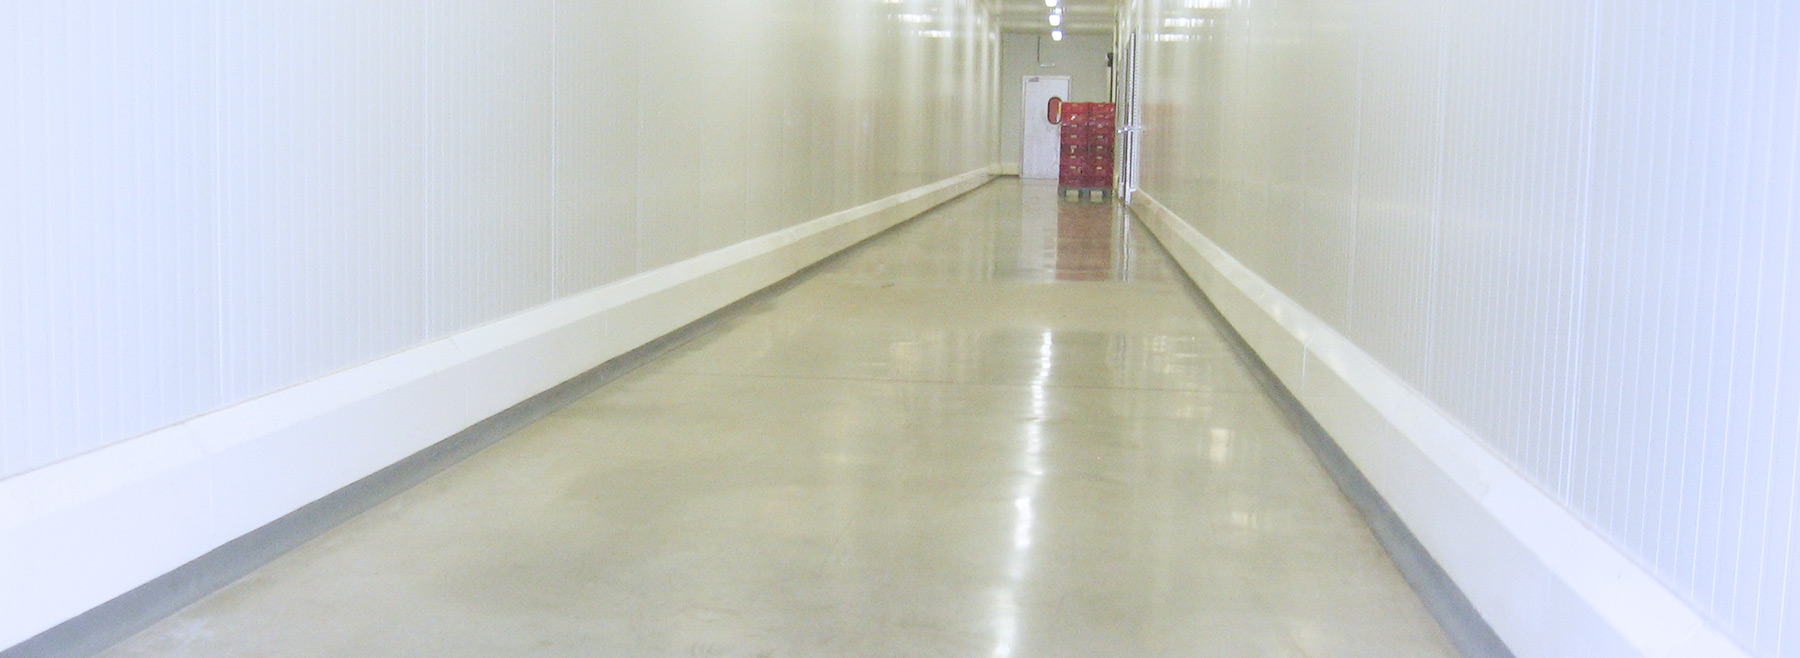 Hallway with curbs and crates